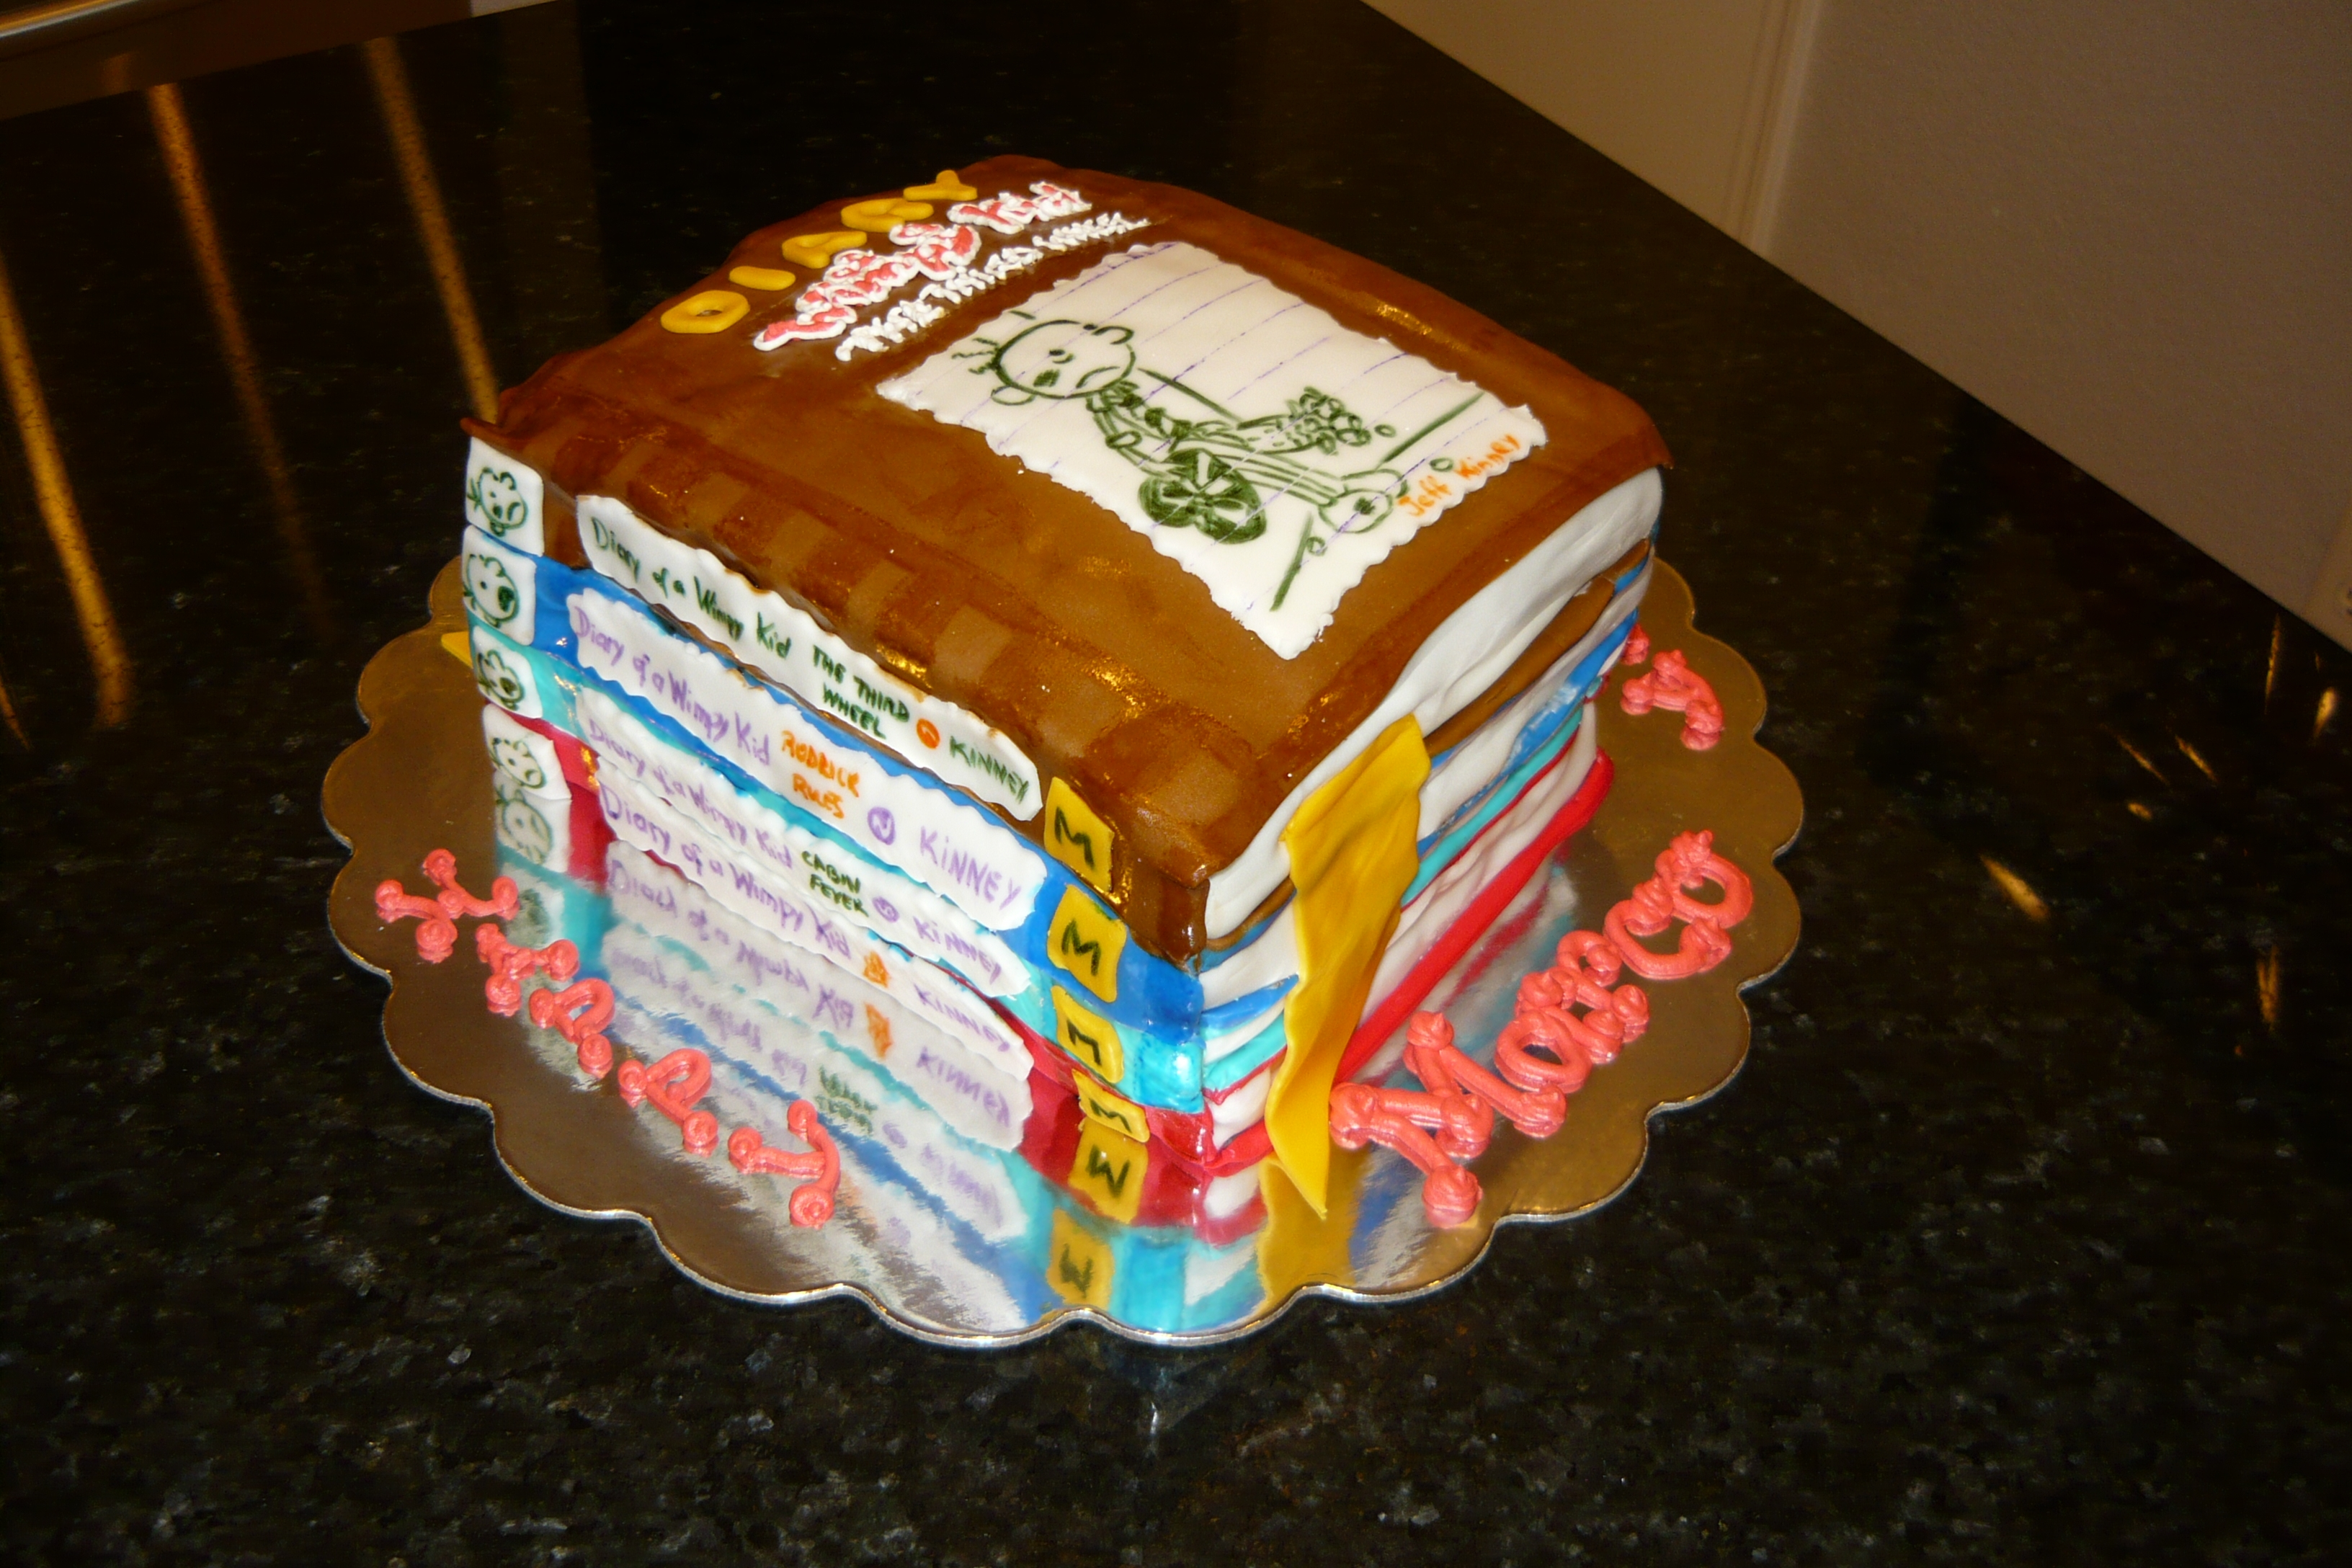 Diary Of A Wimpy Kid Cake Tutorial